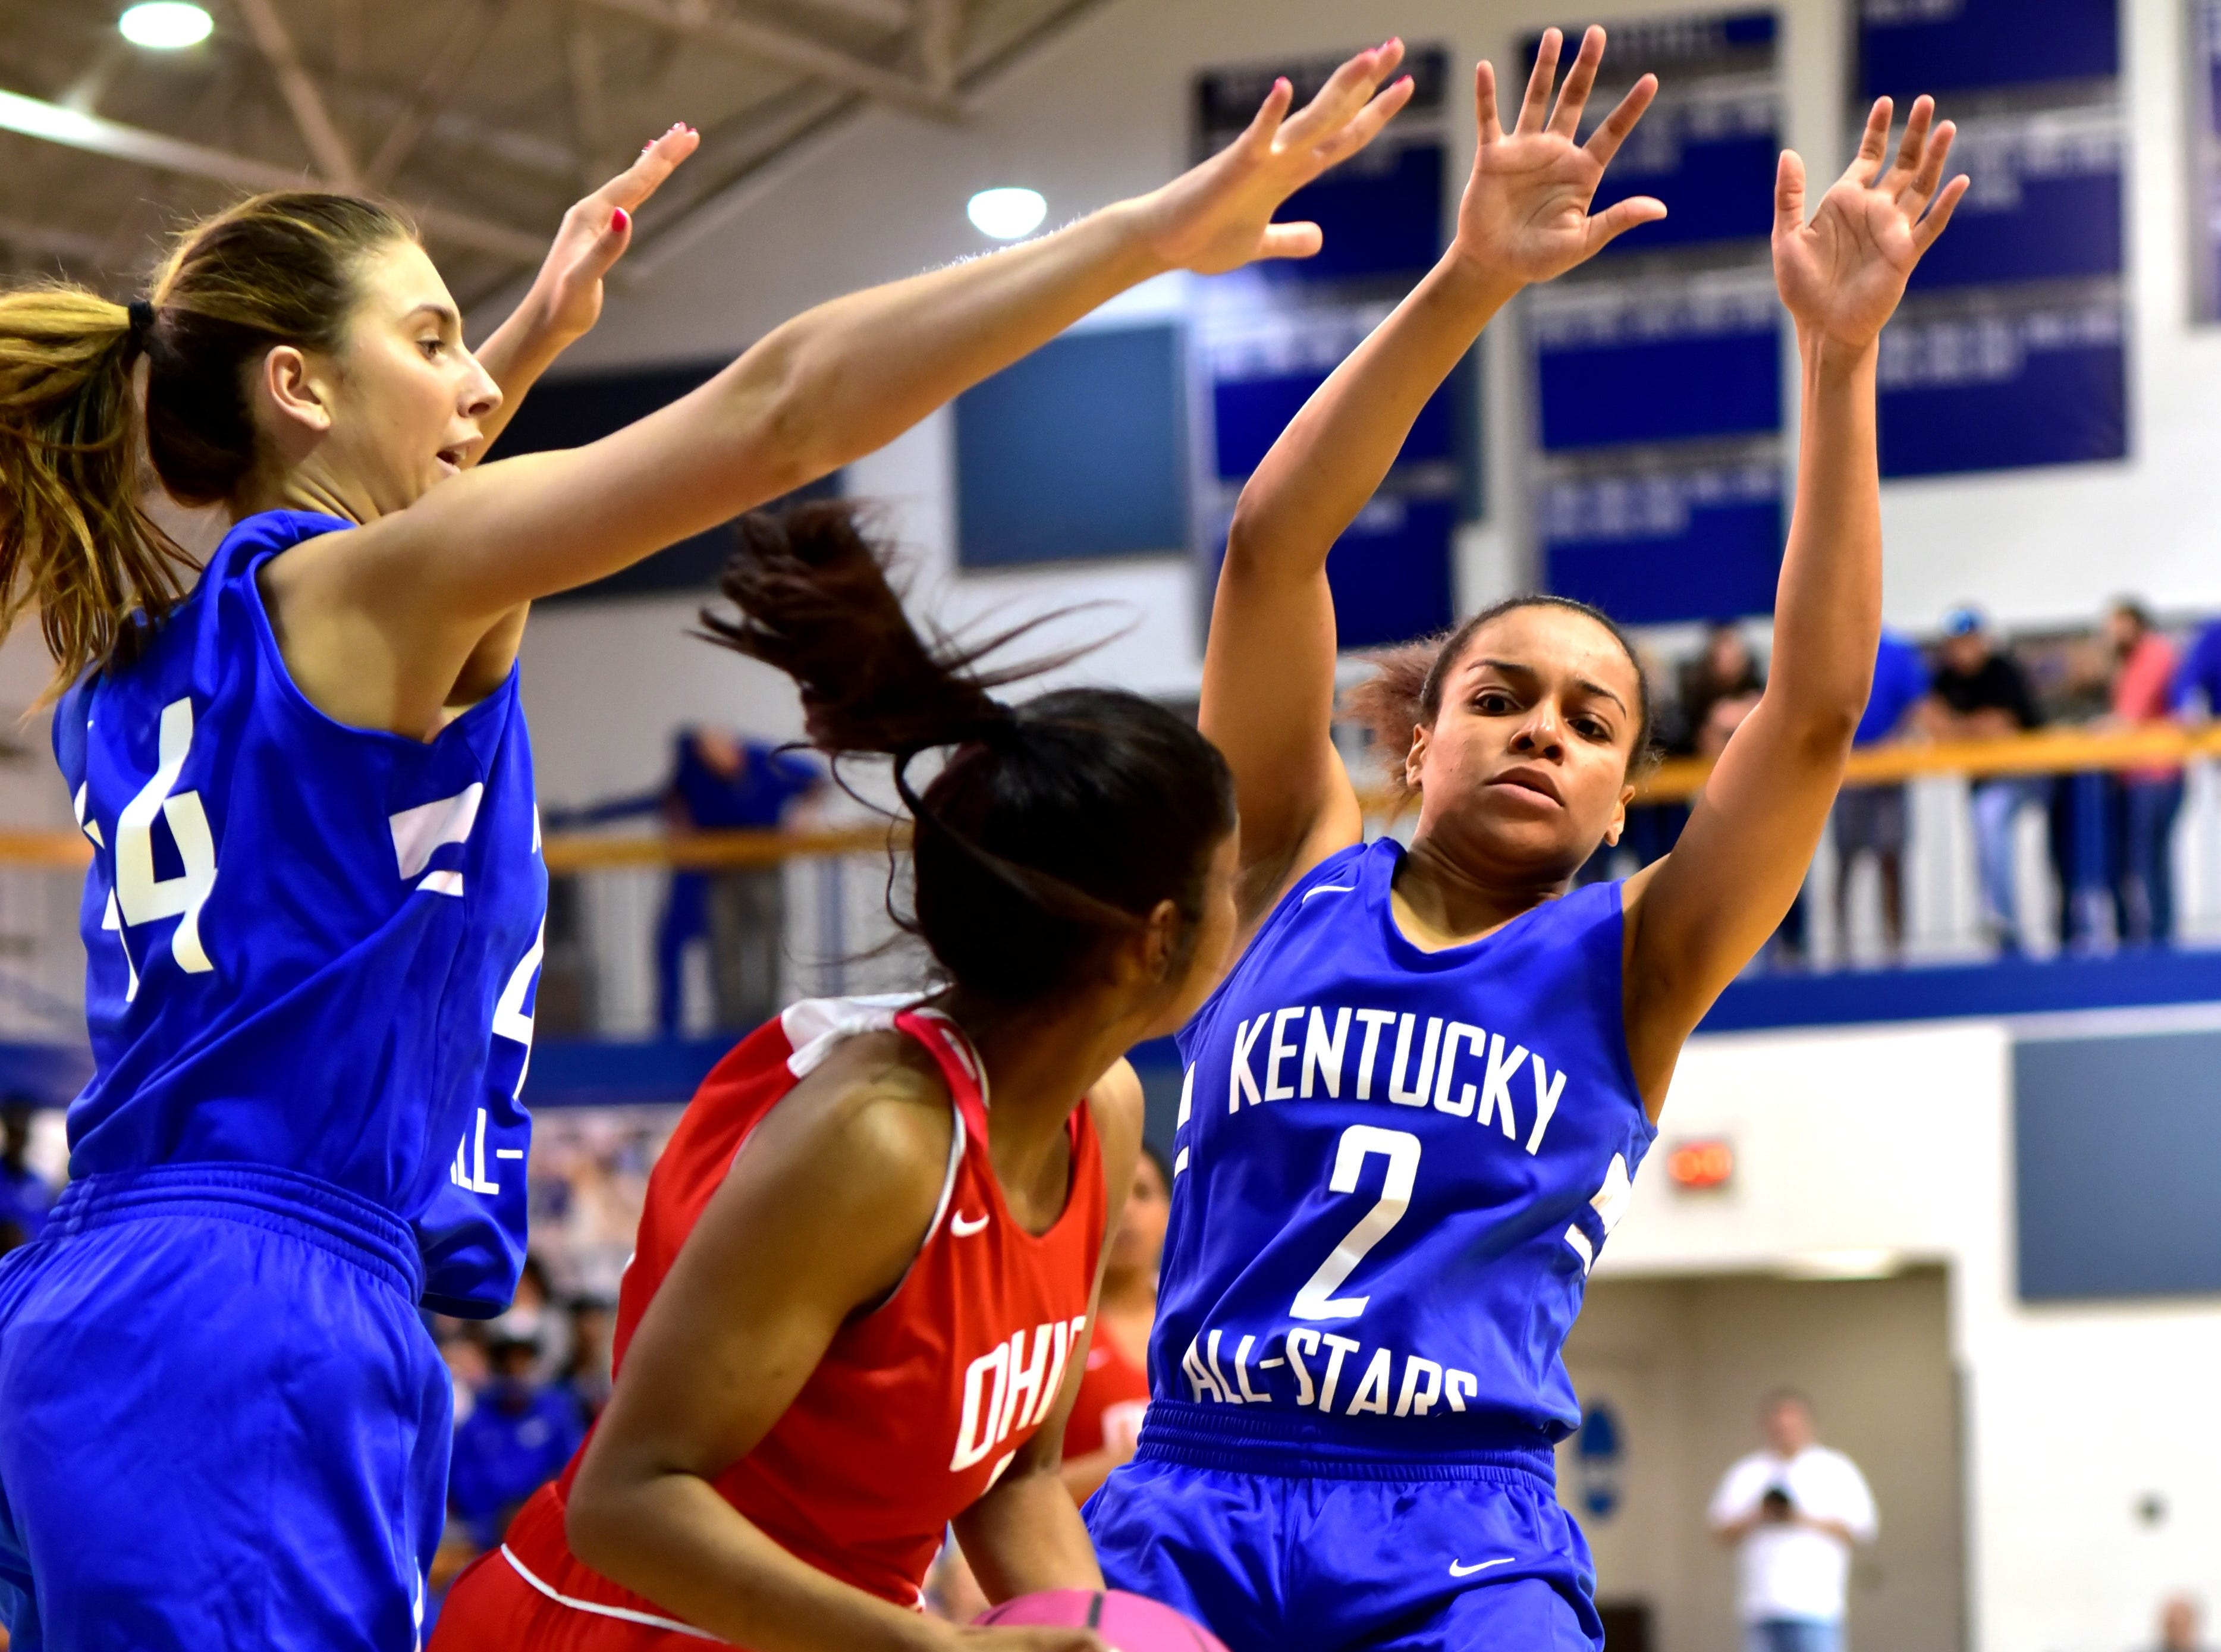 Ivy Turner (2) of Danville and Hayley Harrison of George Rogers Clark of the Kentucky girls team tie up Lakota West's Bryana Henderson in first quarter action at the 28th Annual Ohio-Kentucky All Star Games played at Thomas More University, April 13, 2019